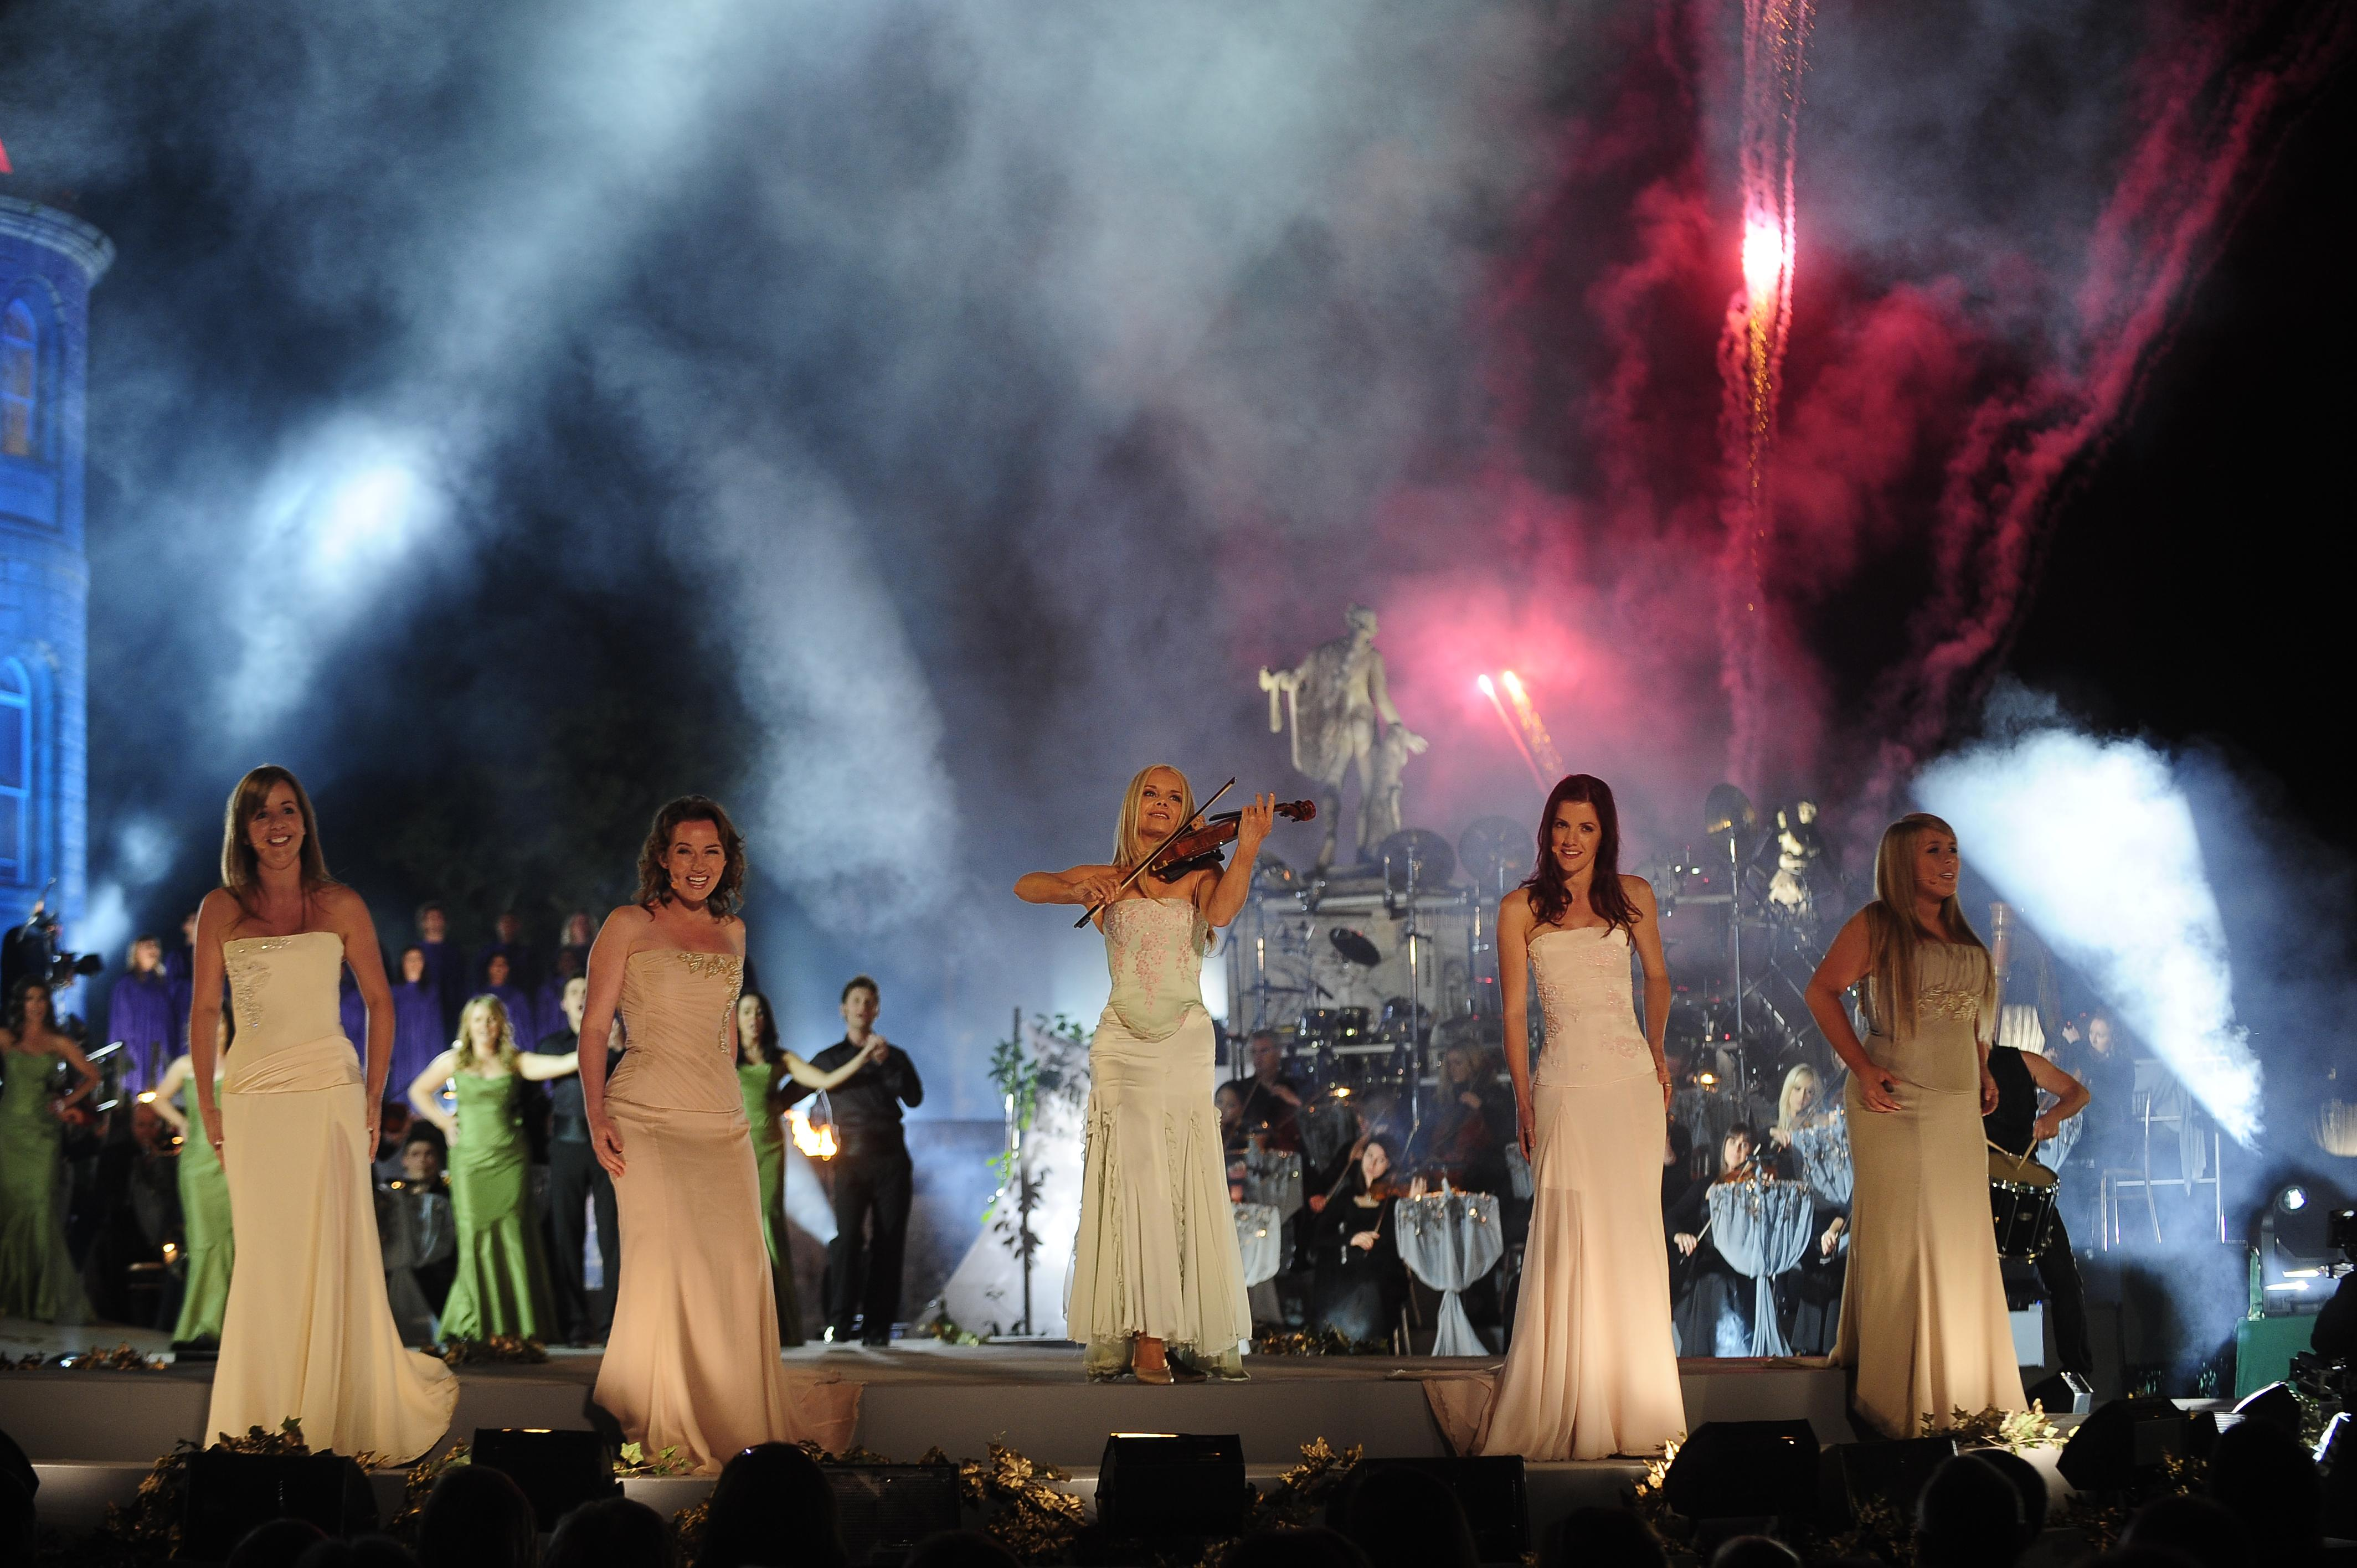 Celtic-women-in-concert